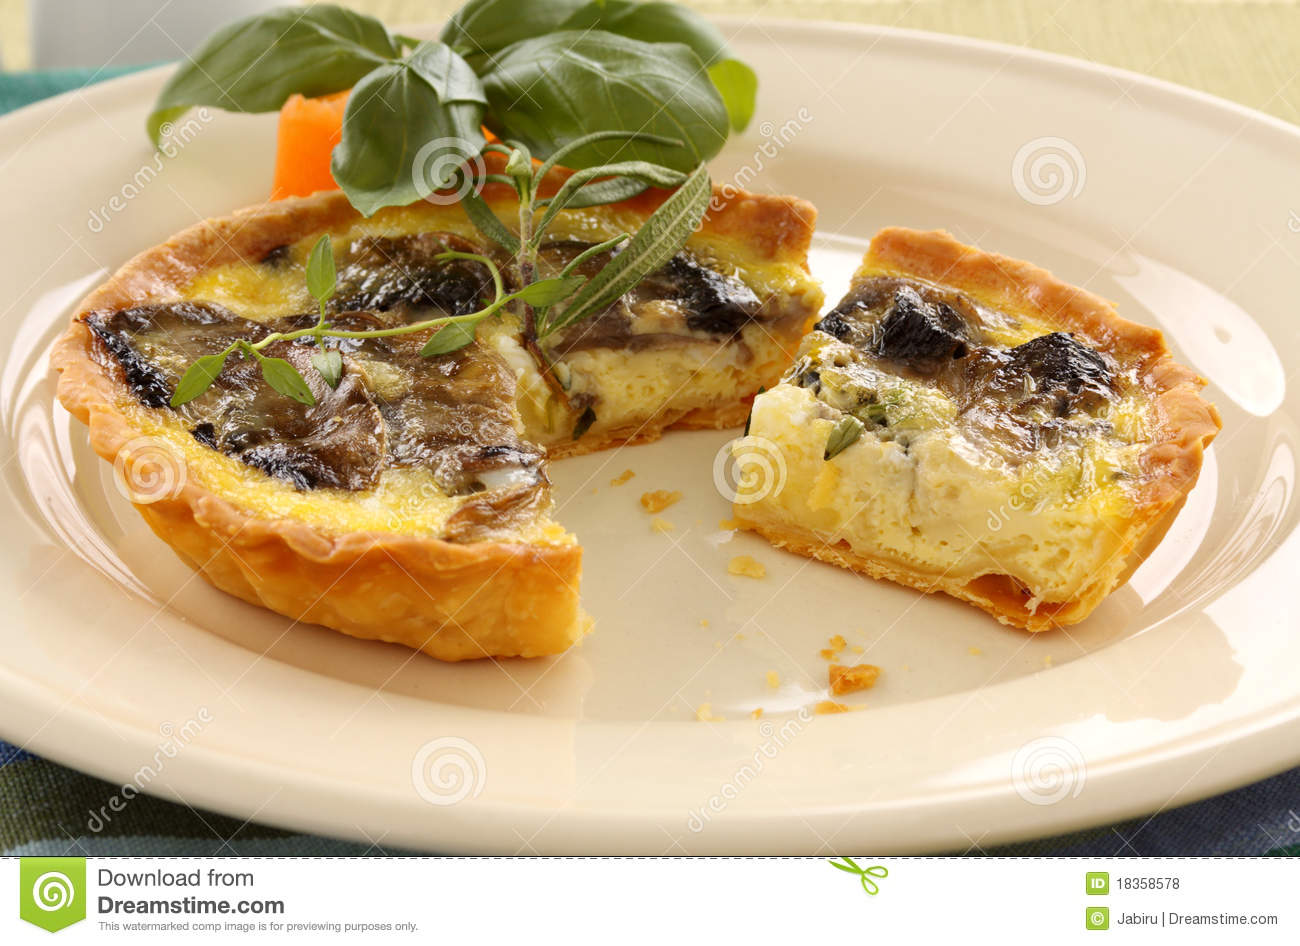 Mushroom Quiche Royalty Free Stock Photos - Image: 18358578